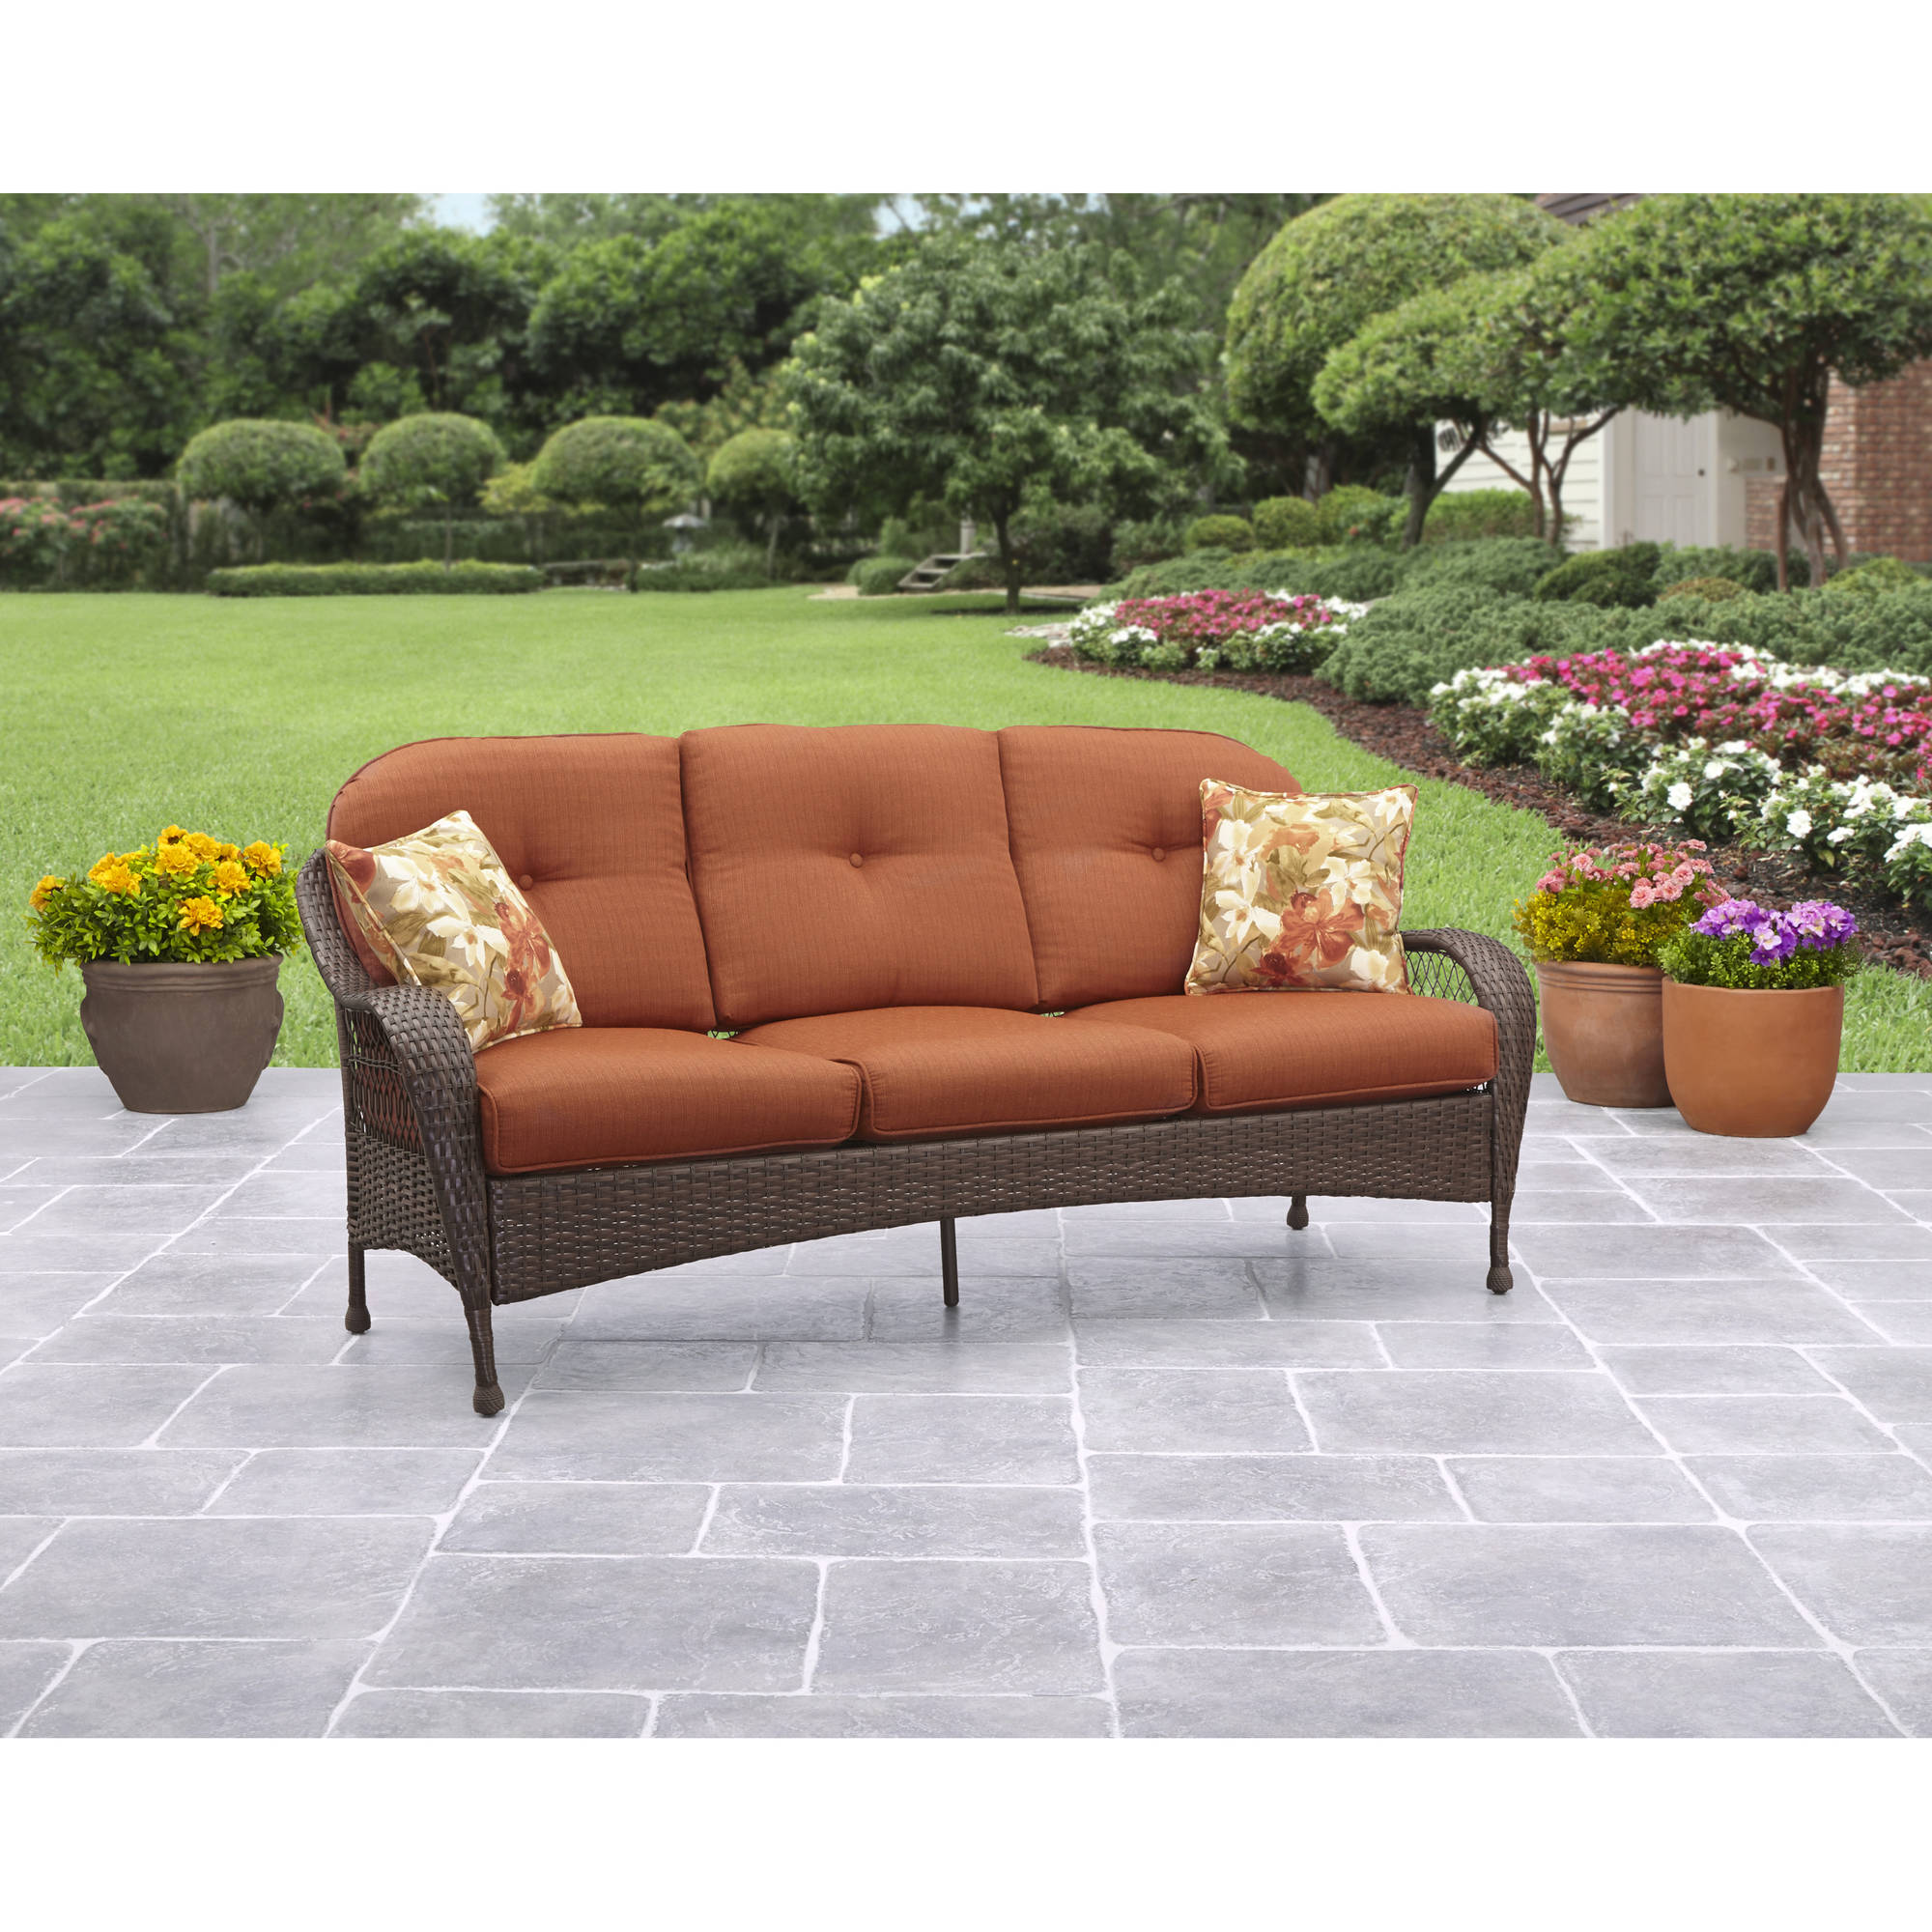 better homes and gardens azalea ridge outdoor sofa seats 3 rh walmart com